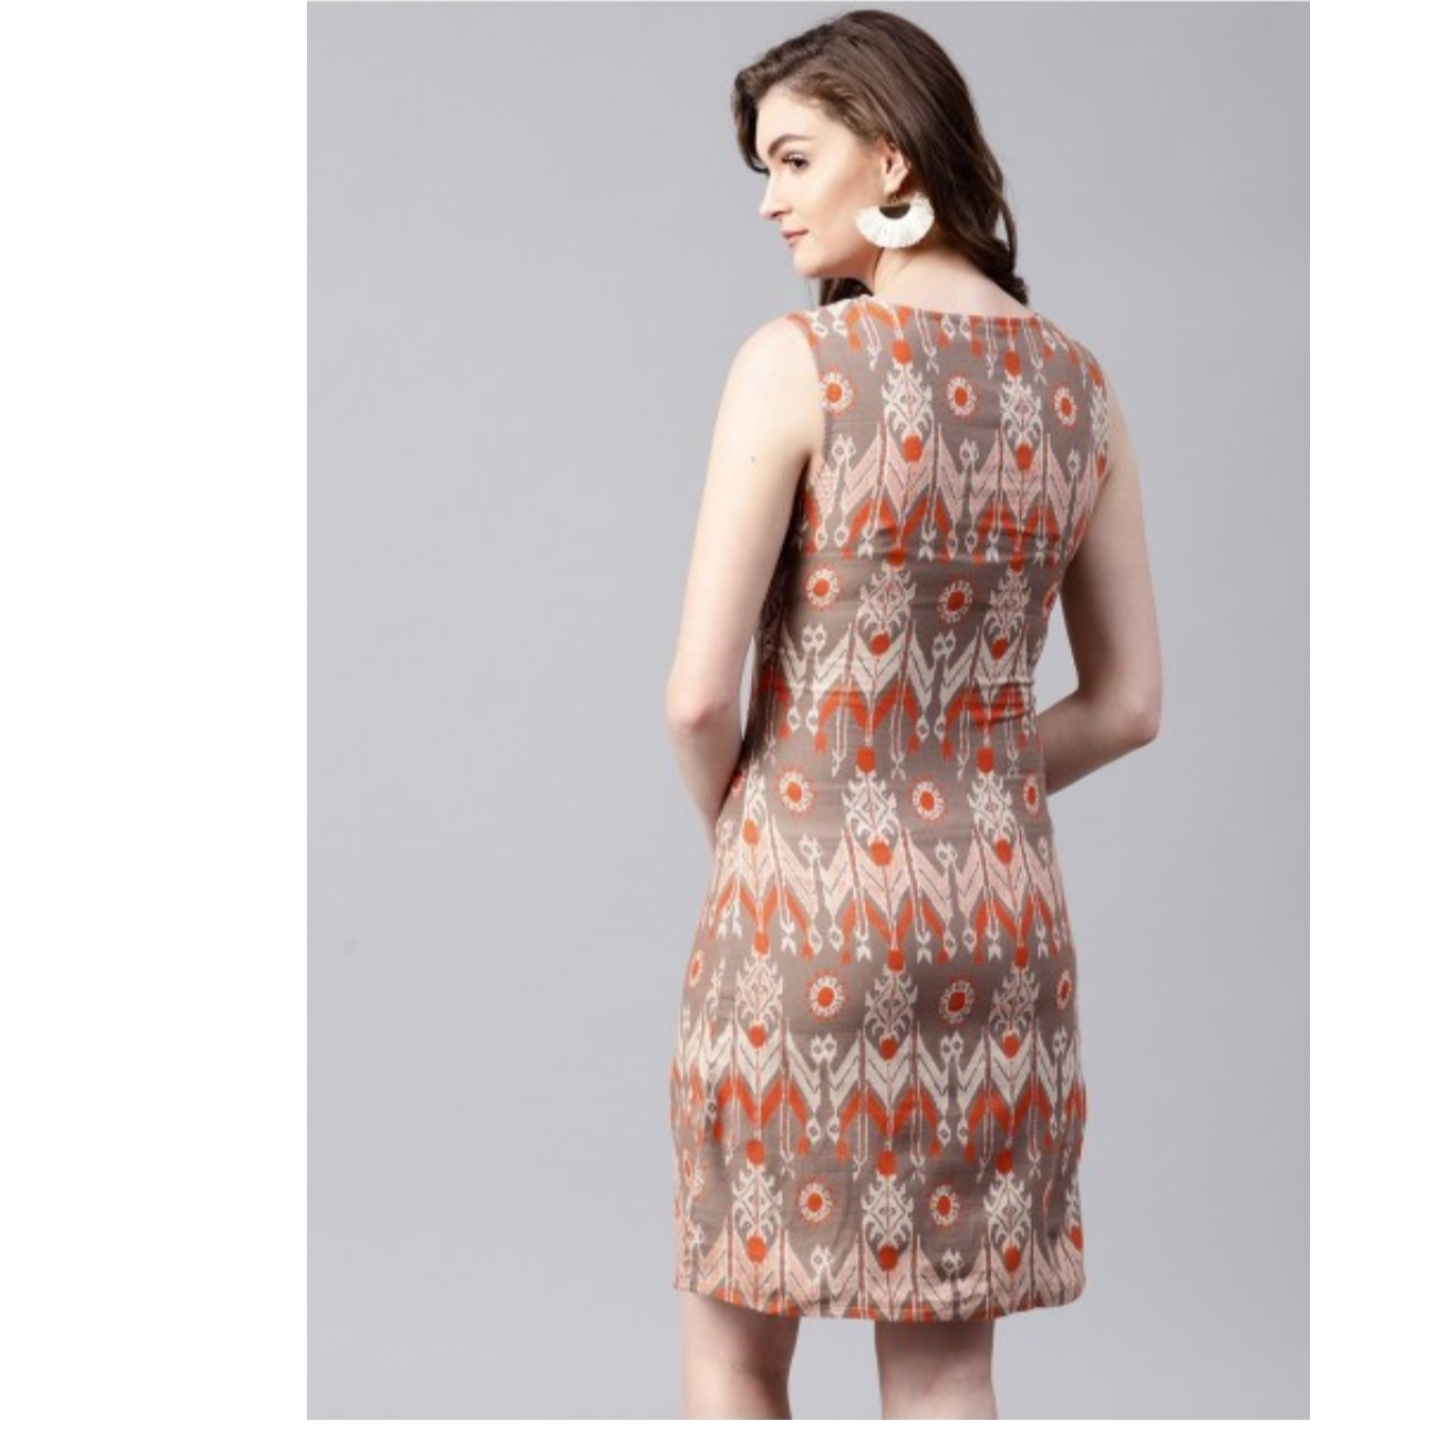 Grey & Orange Printed Shift Dress